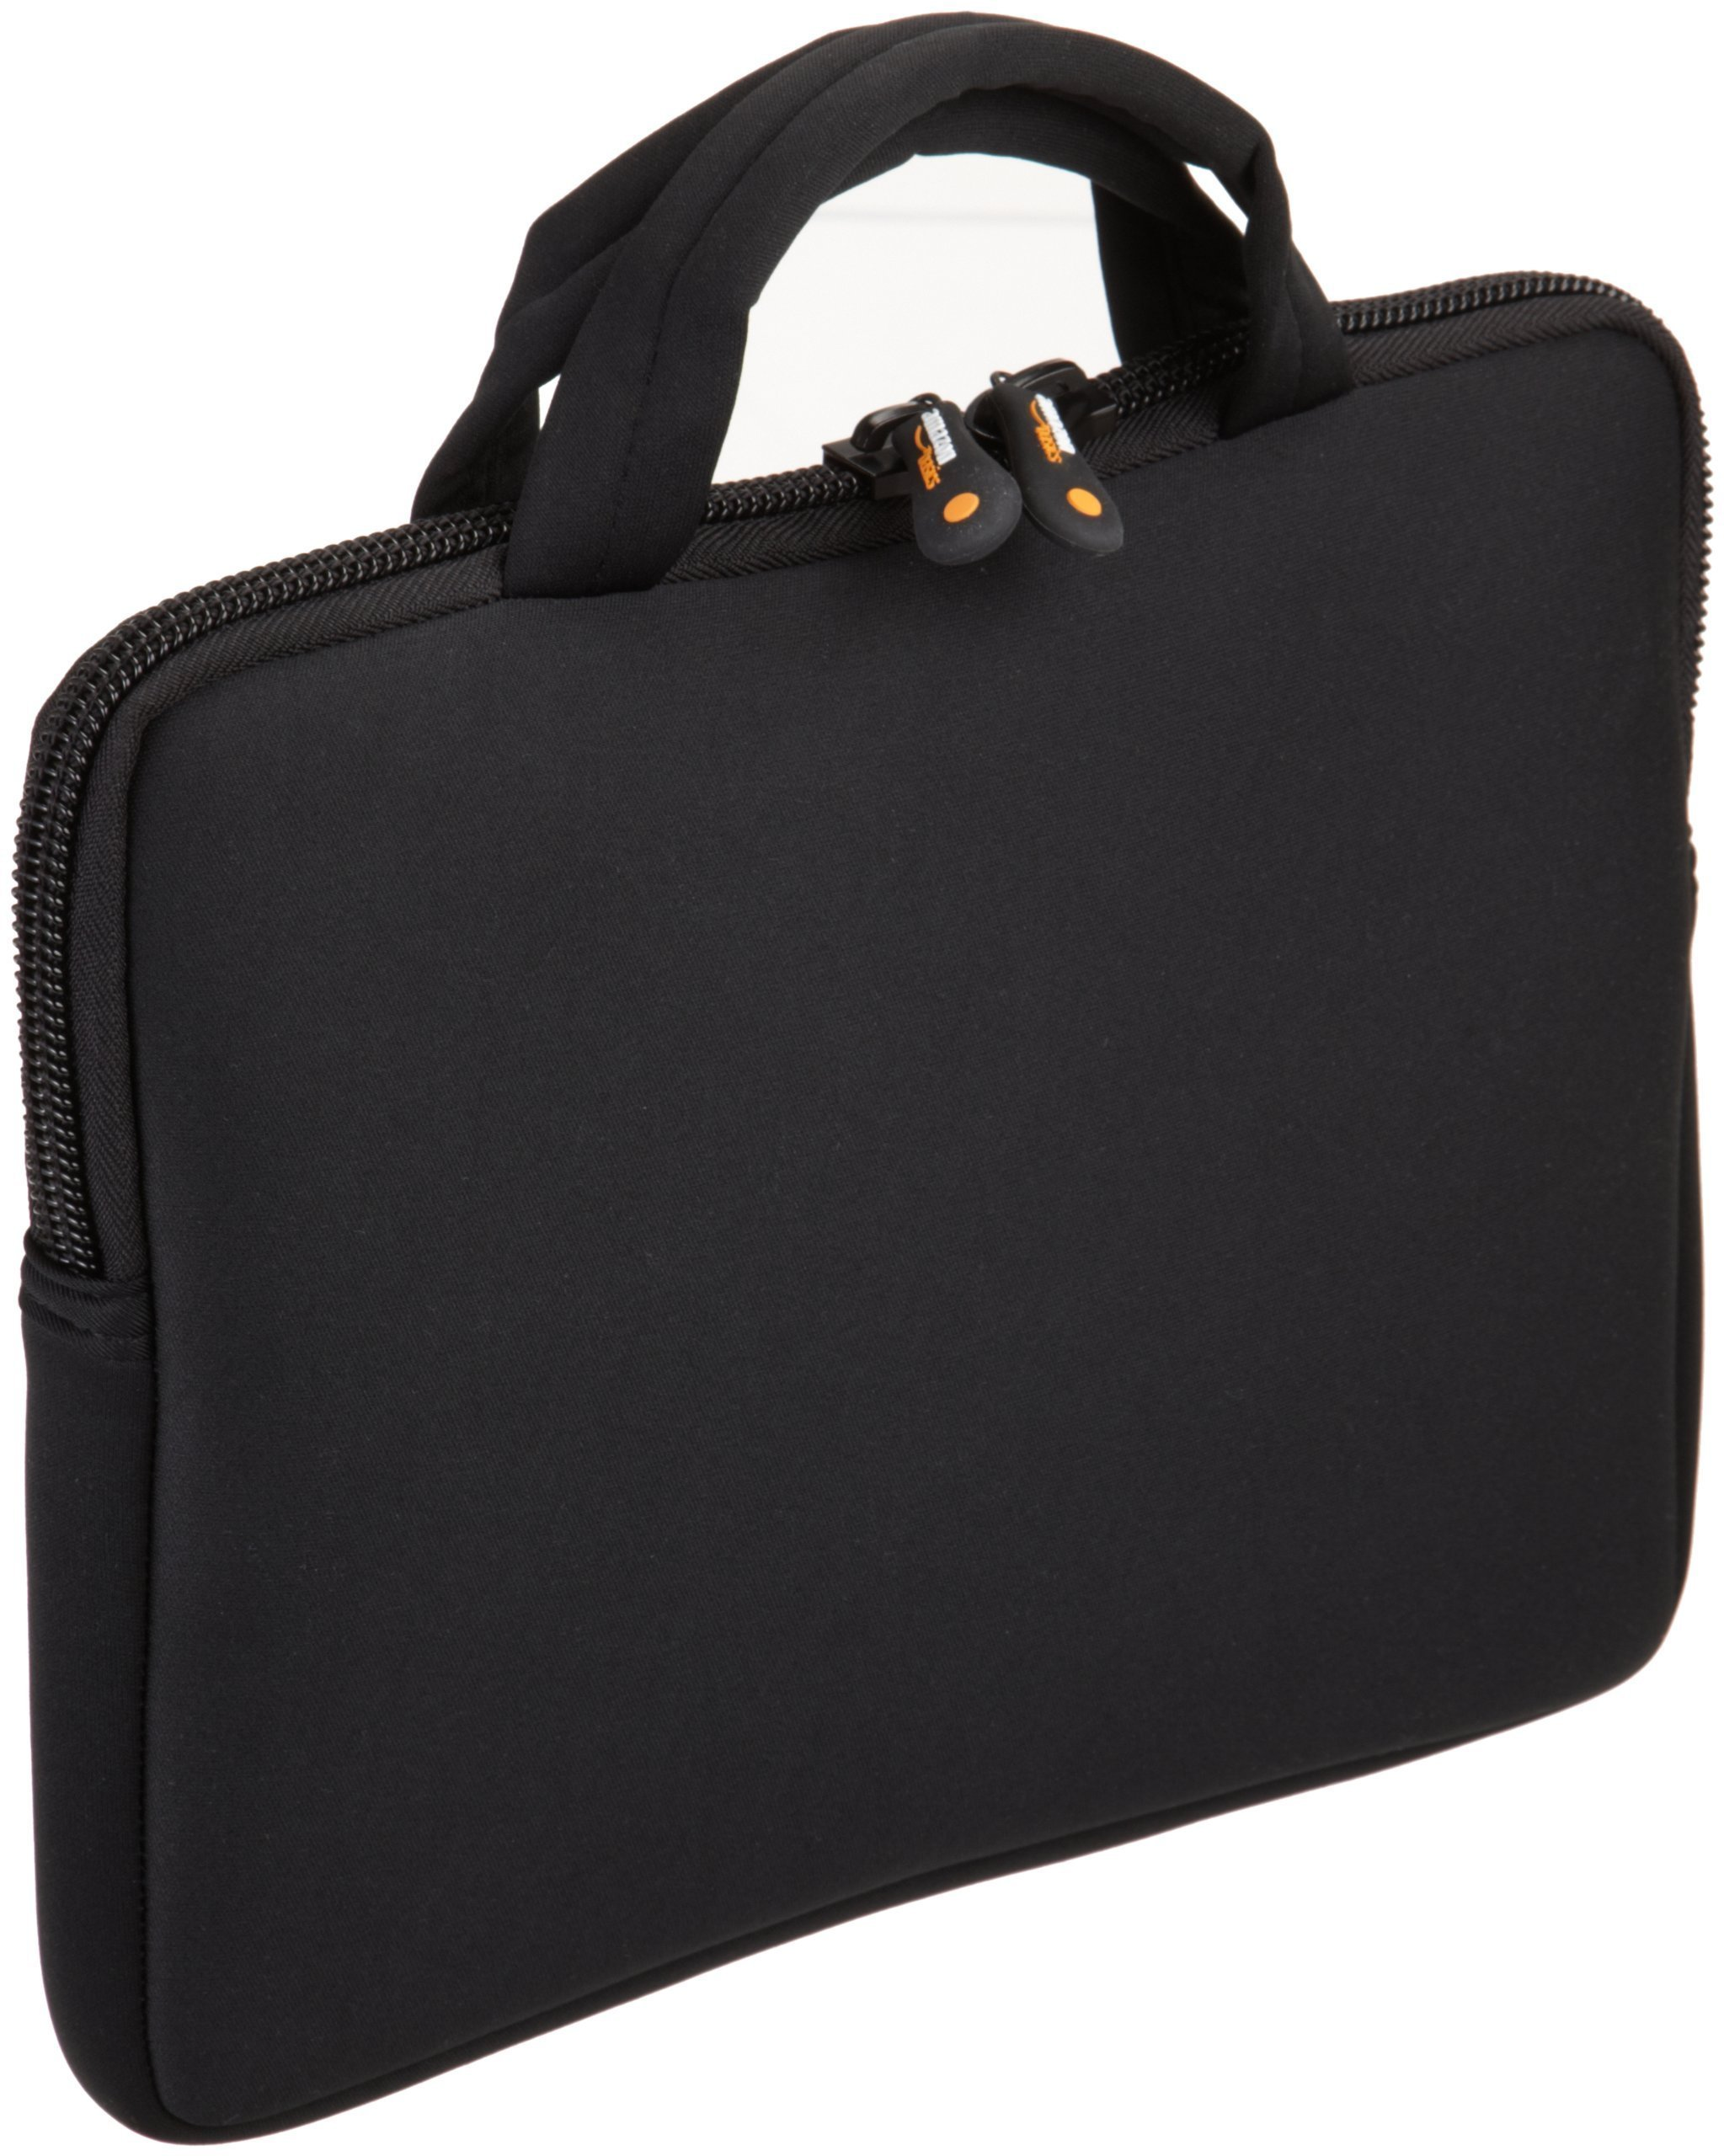 AmazonBasics iPad Air and Netbook Bag with Handle Fits 7 to 10-Inch Tablets (Black) by AmazonBasics (Image #5)